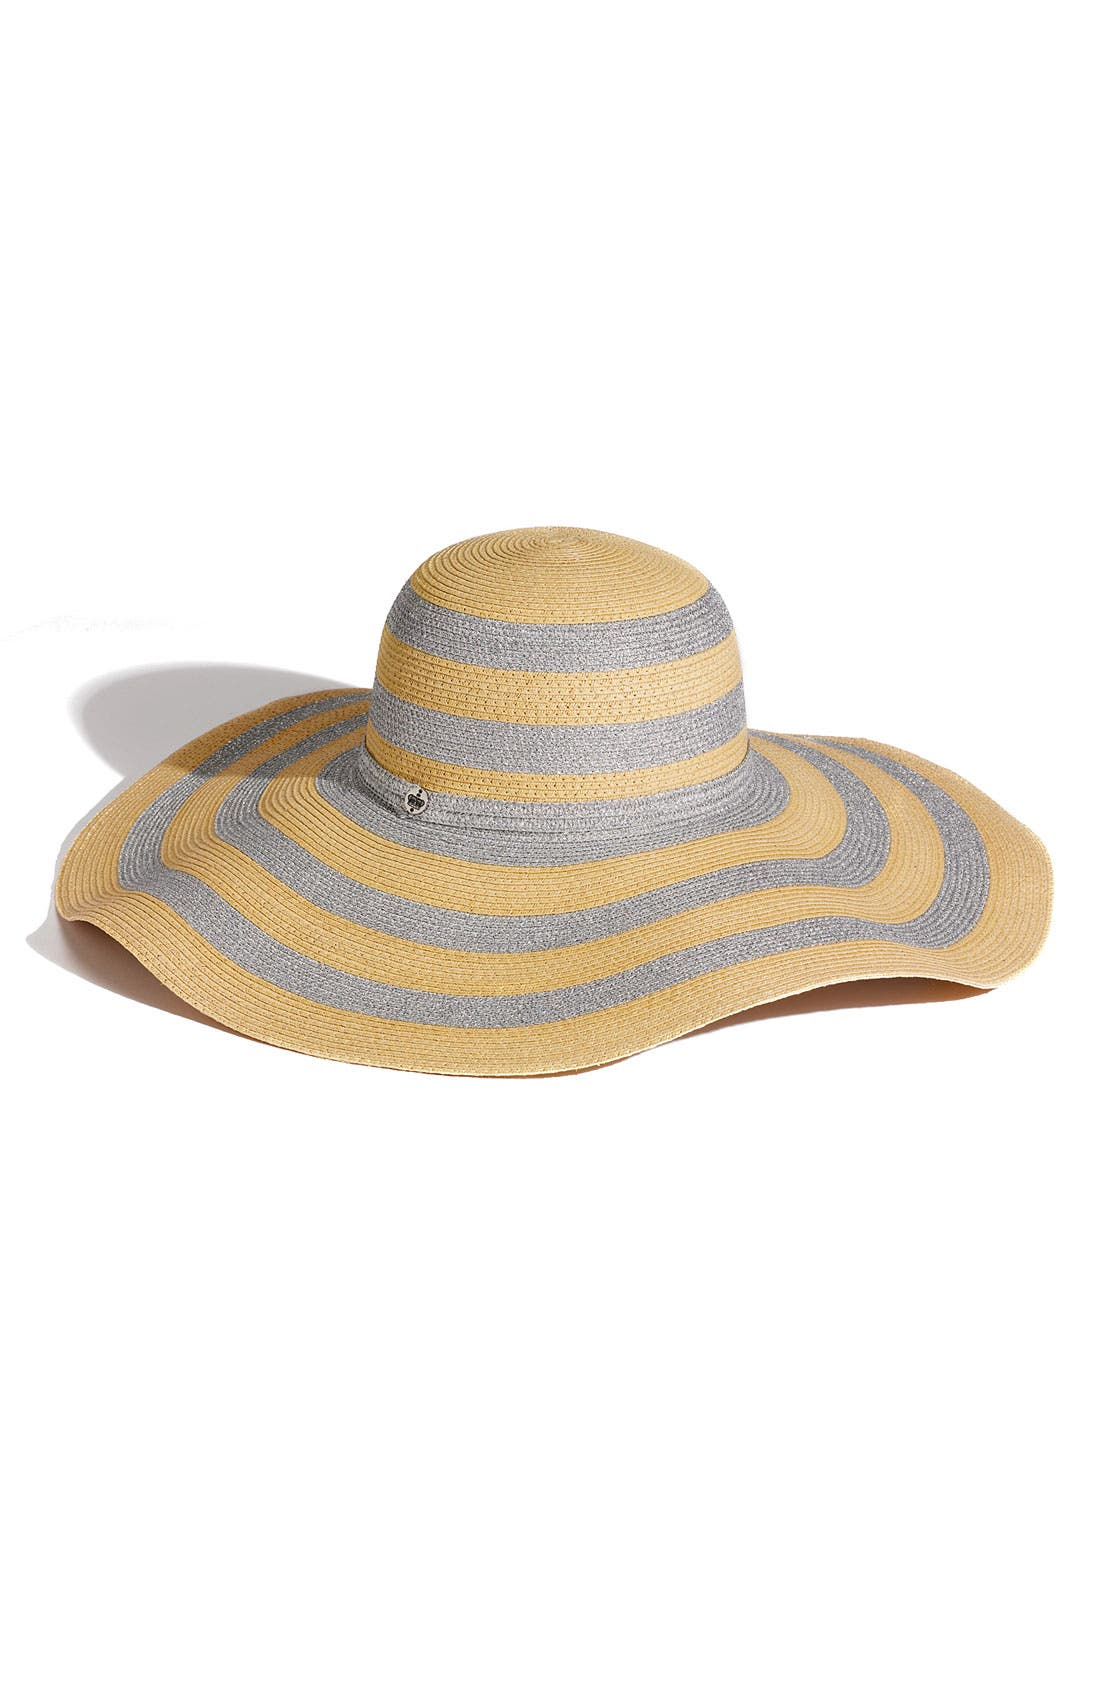 Main Image - Juicy Couture Stripe Floppy Paper Straw Hat